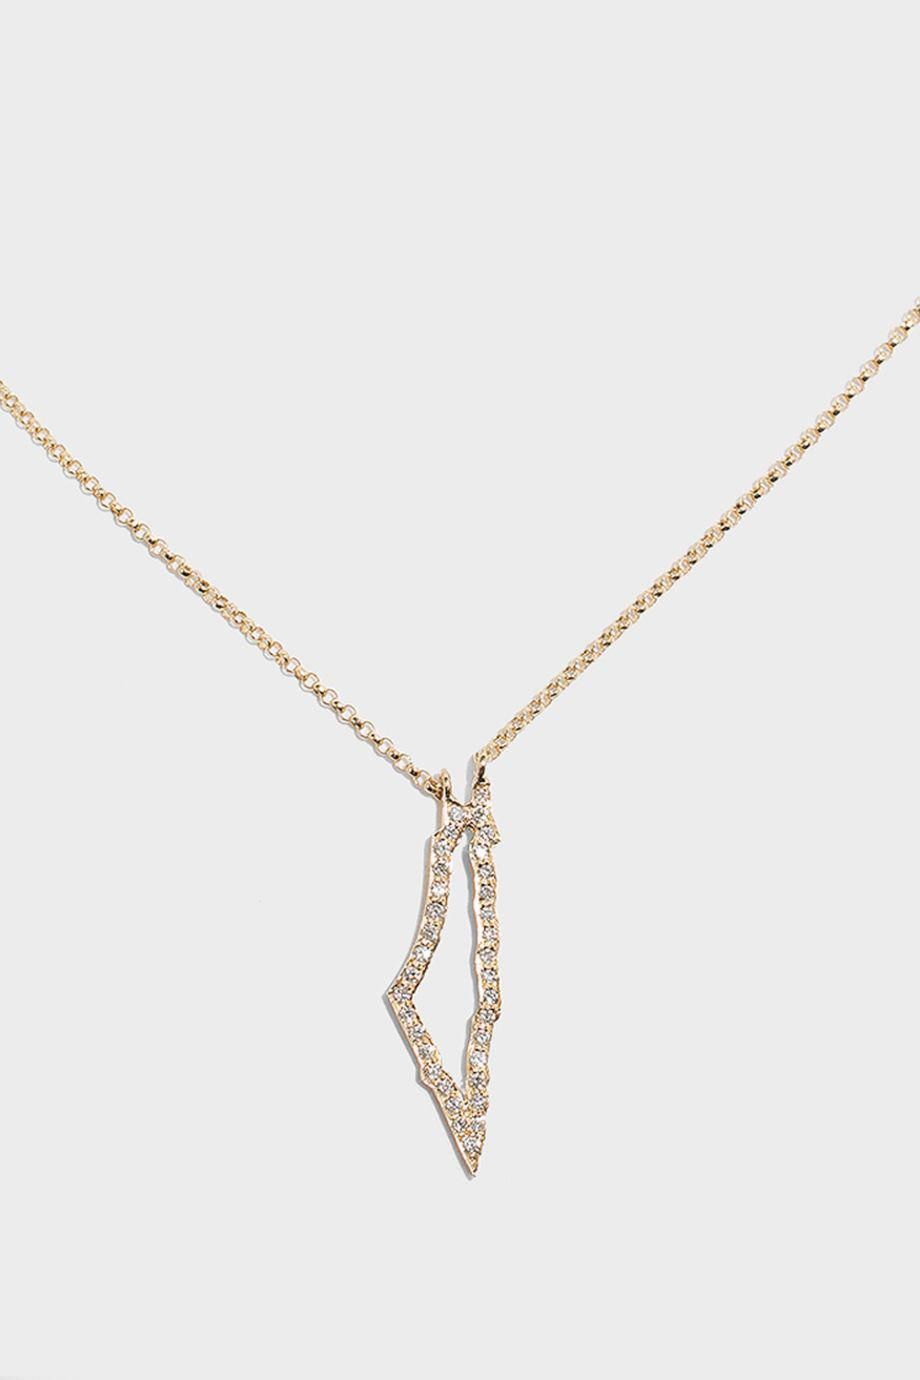 Lyst   Tiba Palestine Map Outline Necklace in Metallic Gallery